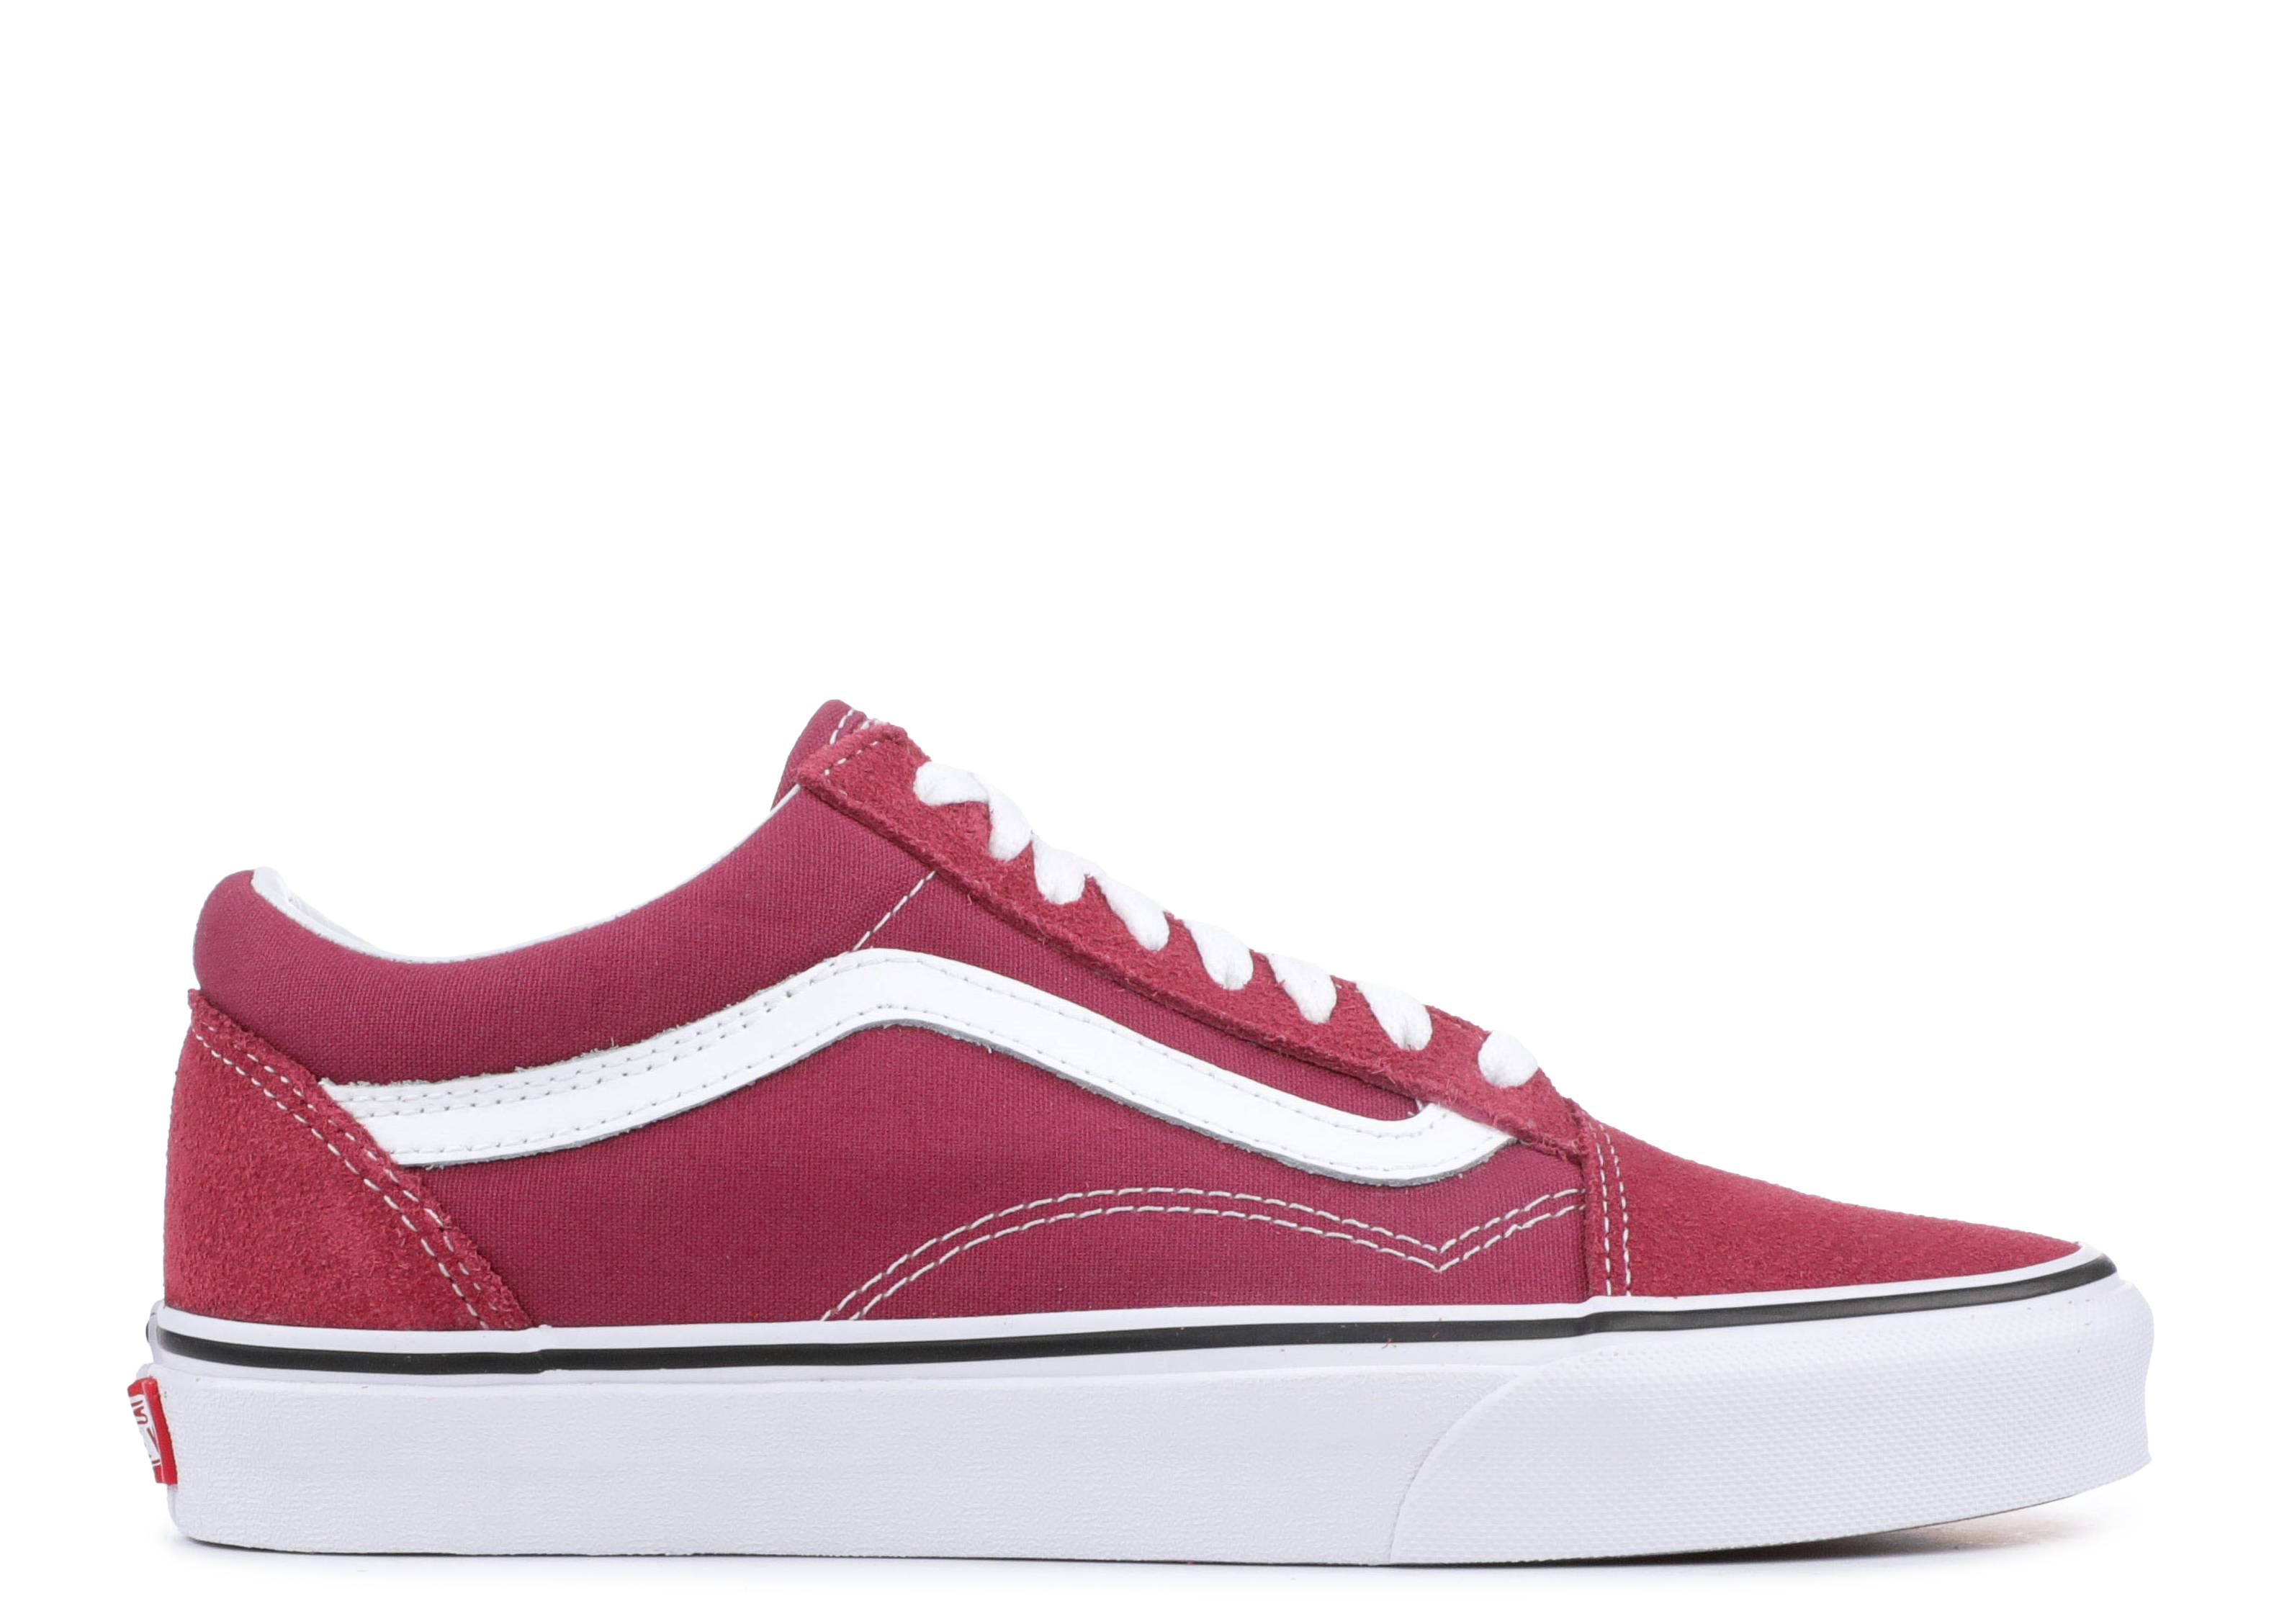 5f0b16646d592a Old Skool - Vans - VN0A38G1U64 - dry rose true white